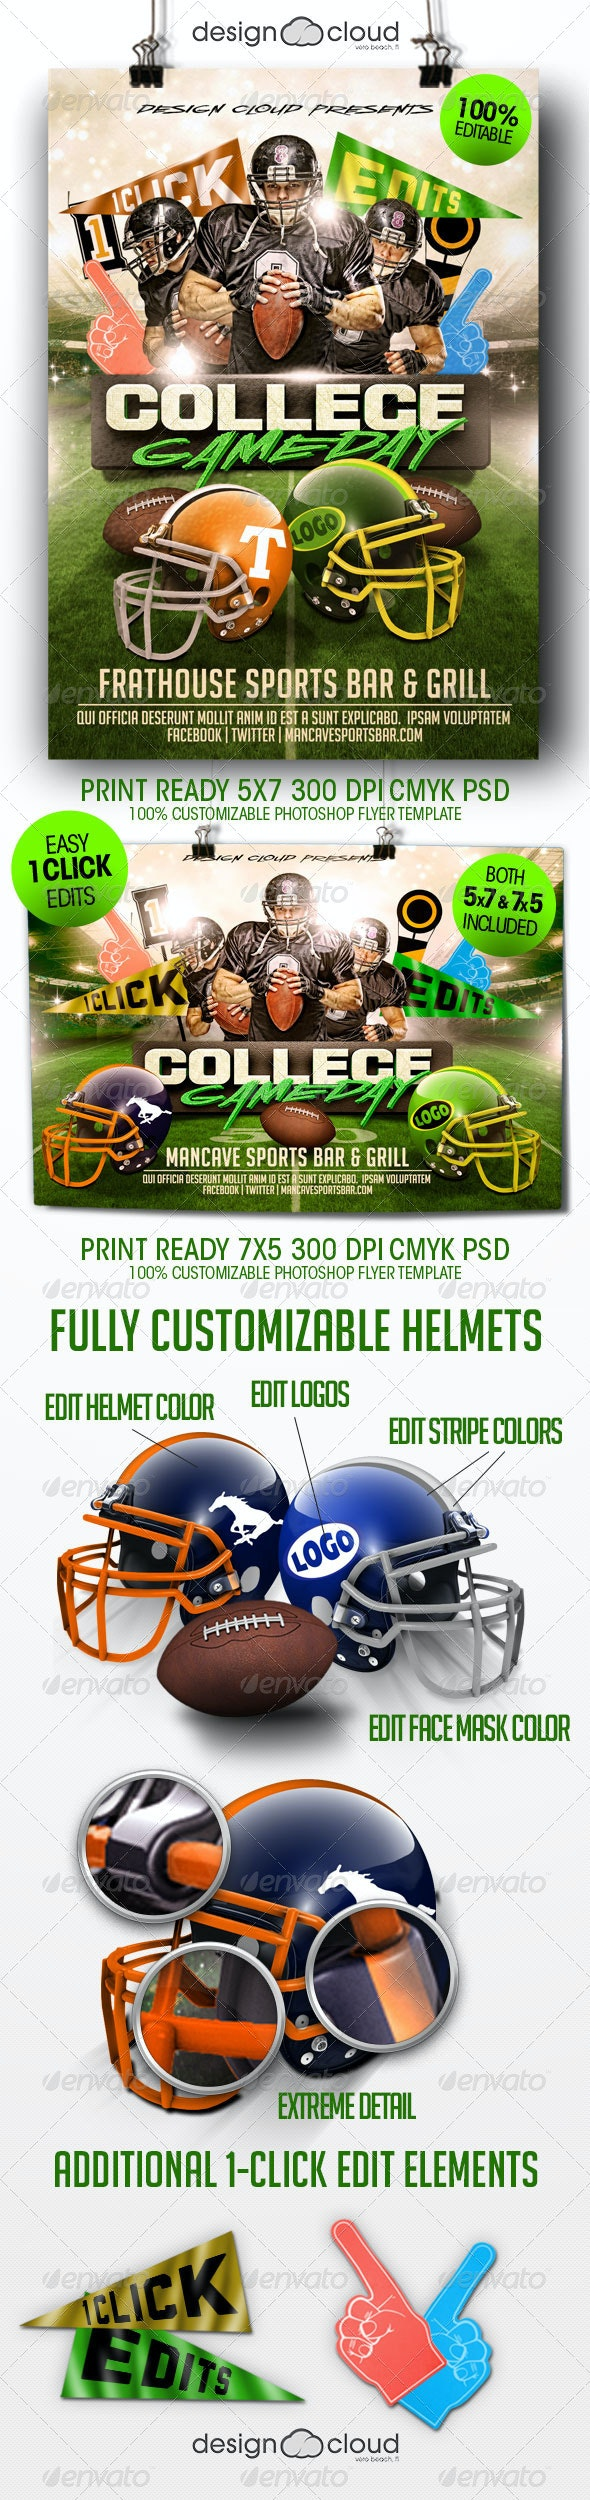 College Football Game Day Flyer Template - Sports Events